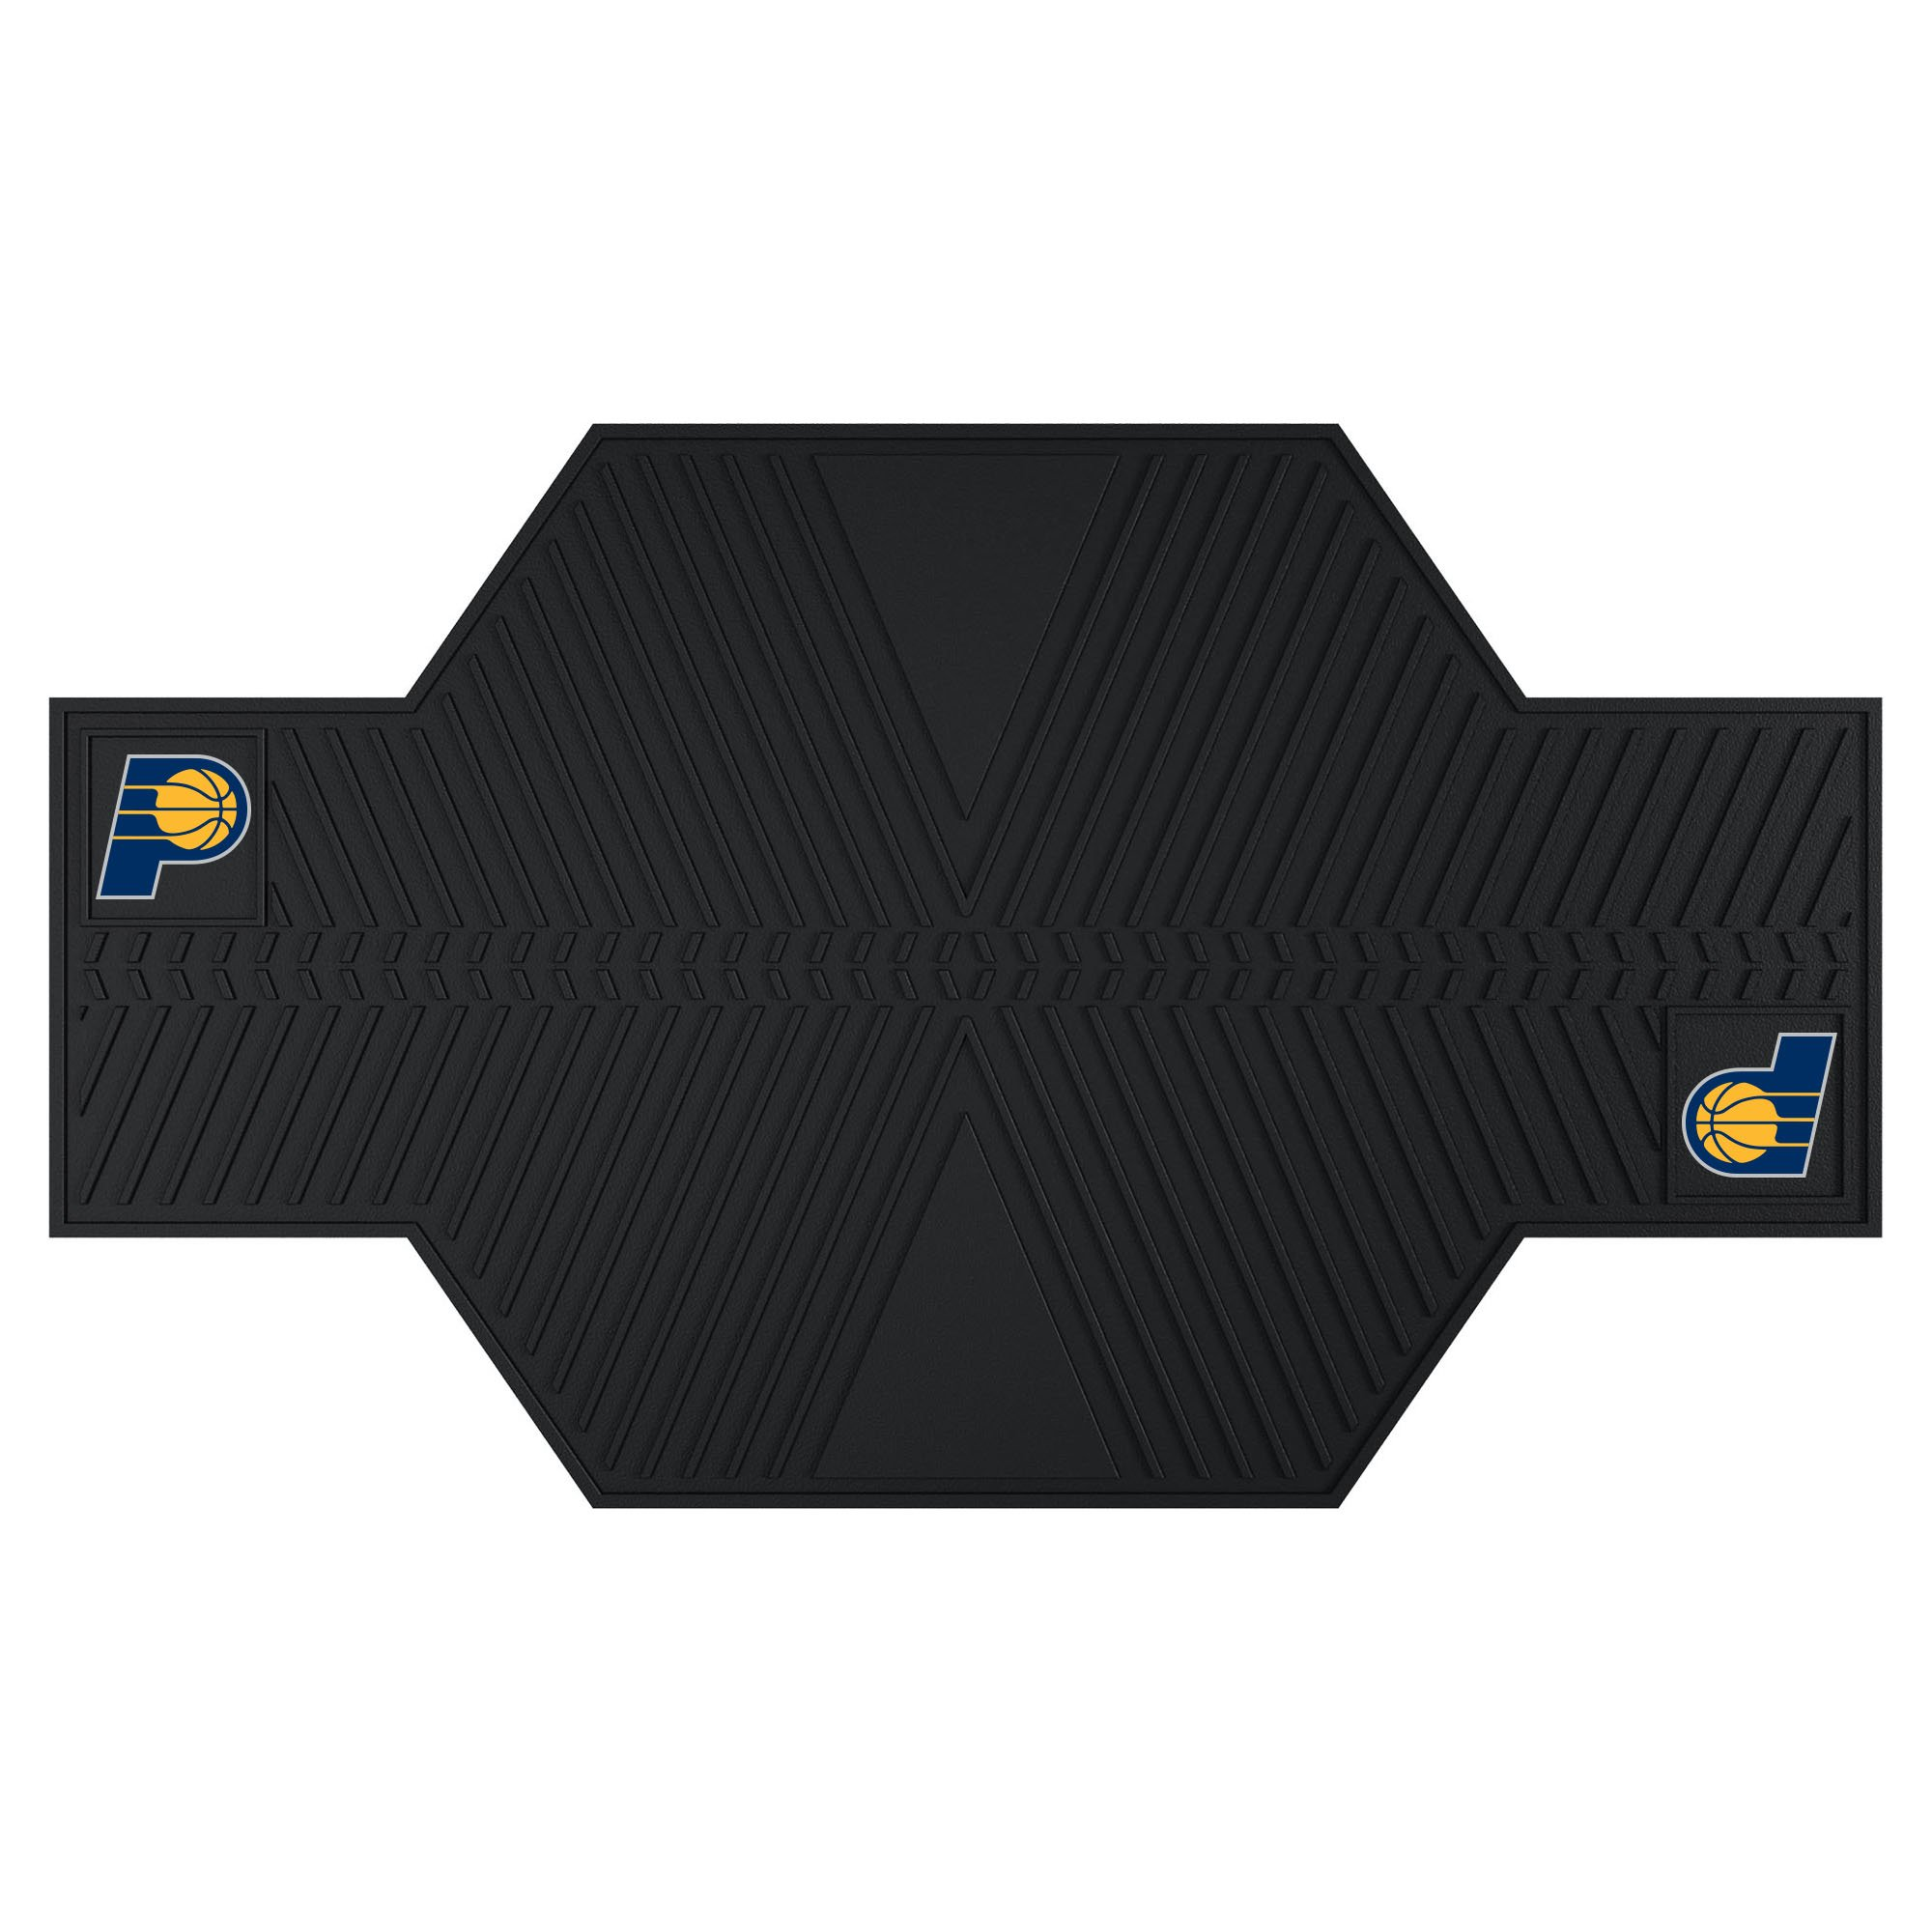 FANMATS 15379 NBA Indiana Pacers Motorcycle Mat